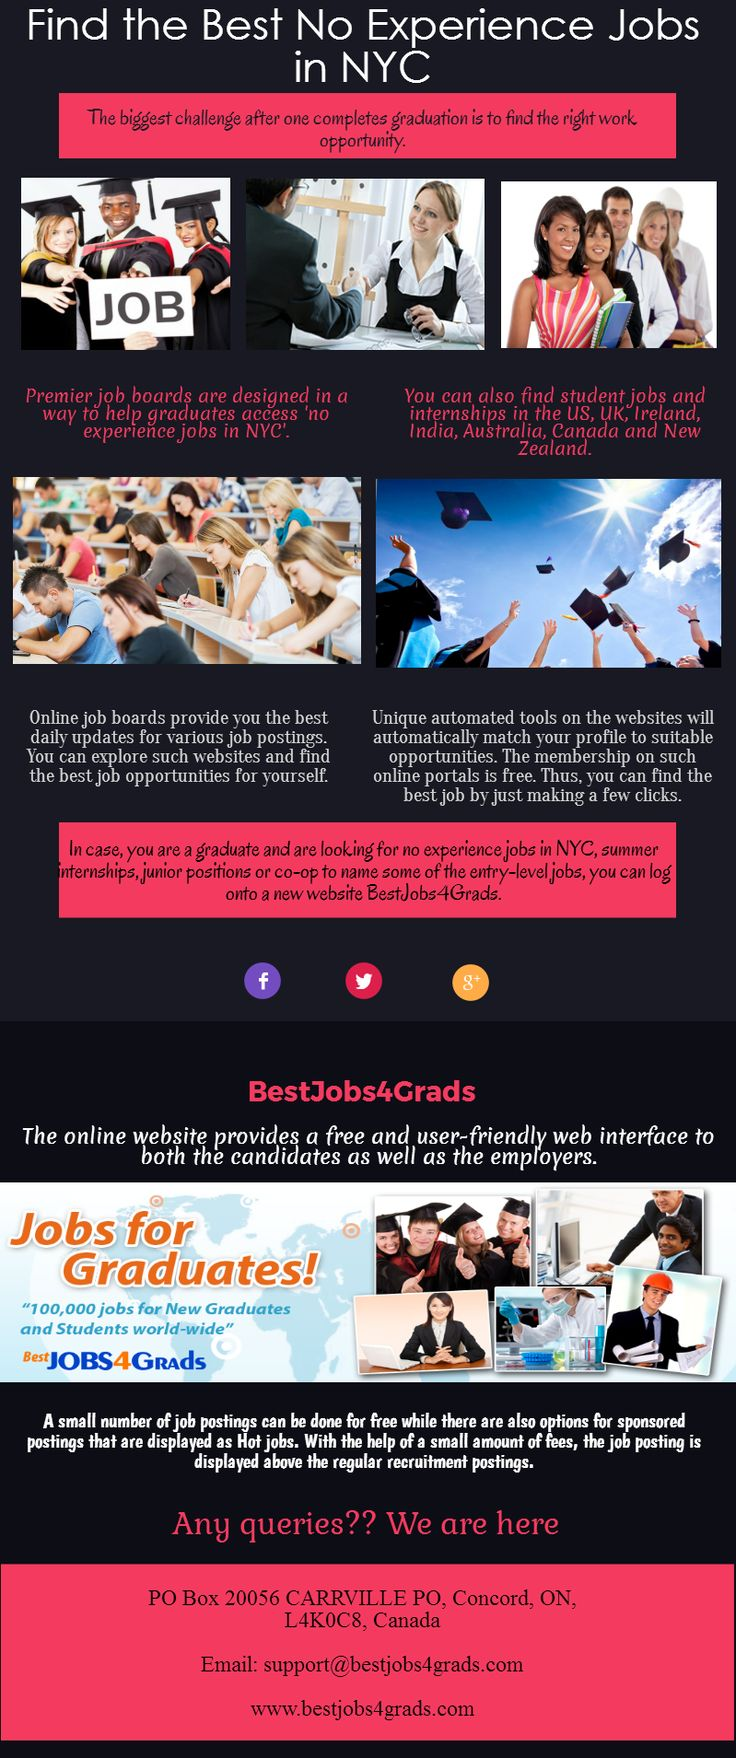 Want to join no experience jobs in NYC then contact to BestJobs4Grads online job portal which help you getting hired amazing job opportunities in New York City. @GlobalCk @BusinessProsABQ @techblix7201 @campinggear8 @pnancy74 @LiveWellNH @0lfkmo63qx16j53 @karrychase @campinggear8 @tshirtdsigner